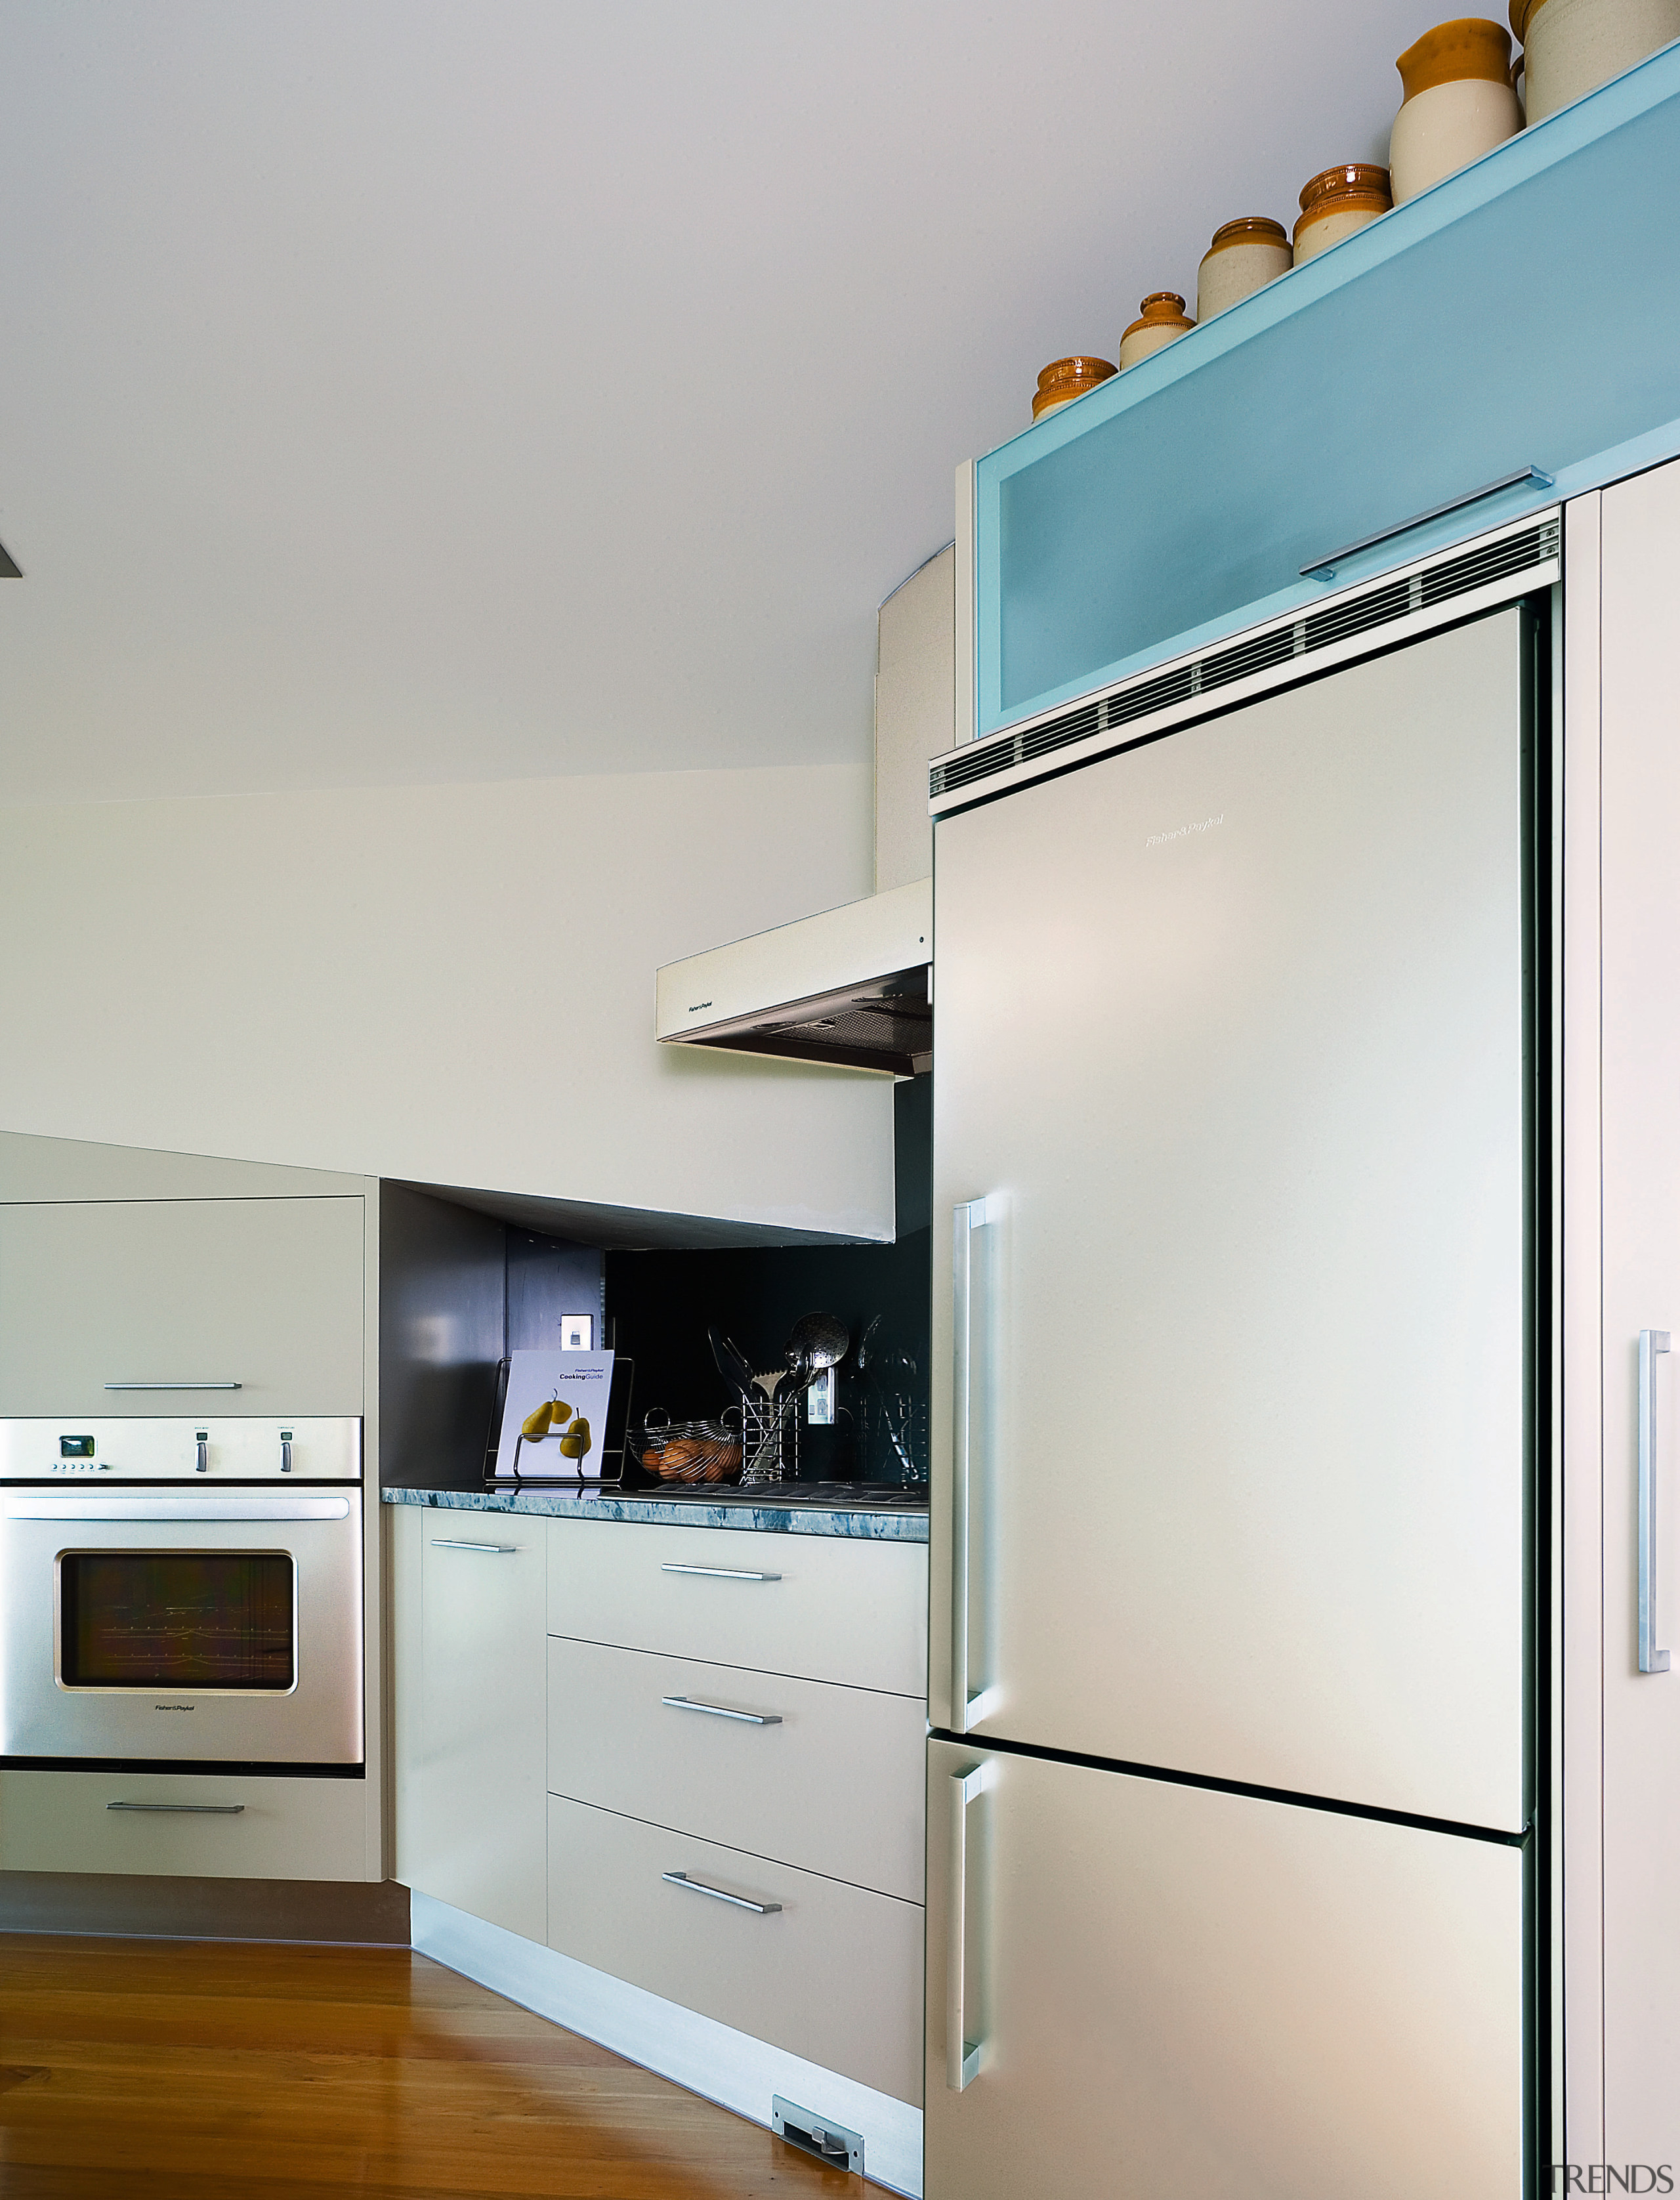 A view of this kitchen featuring the latest home appliance, interior design, kitchen, product design, gray